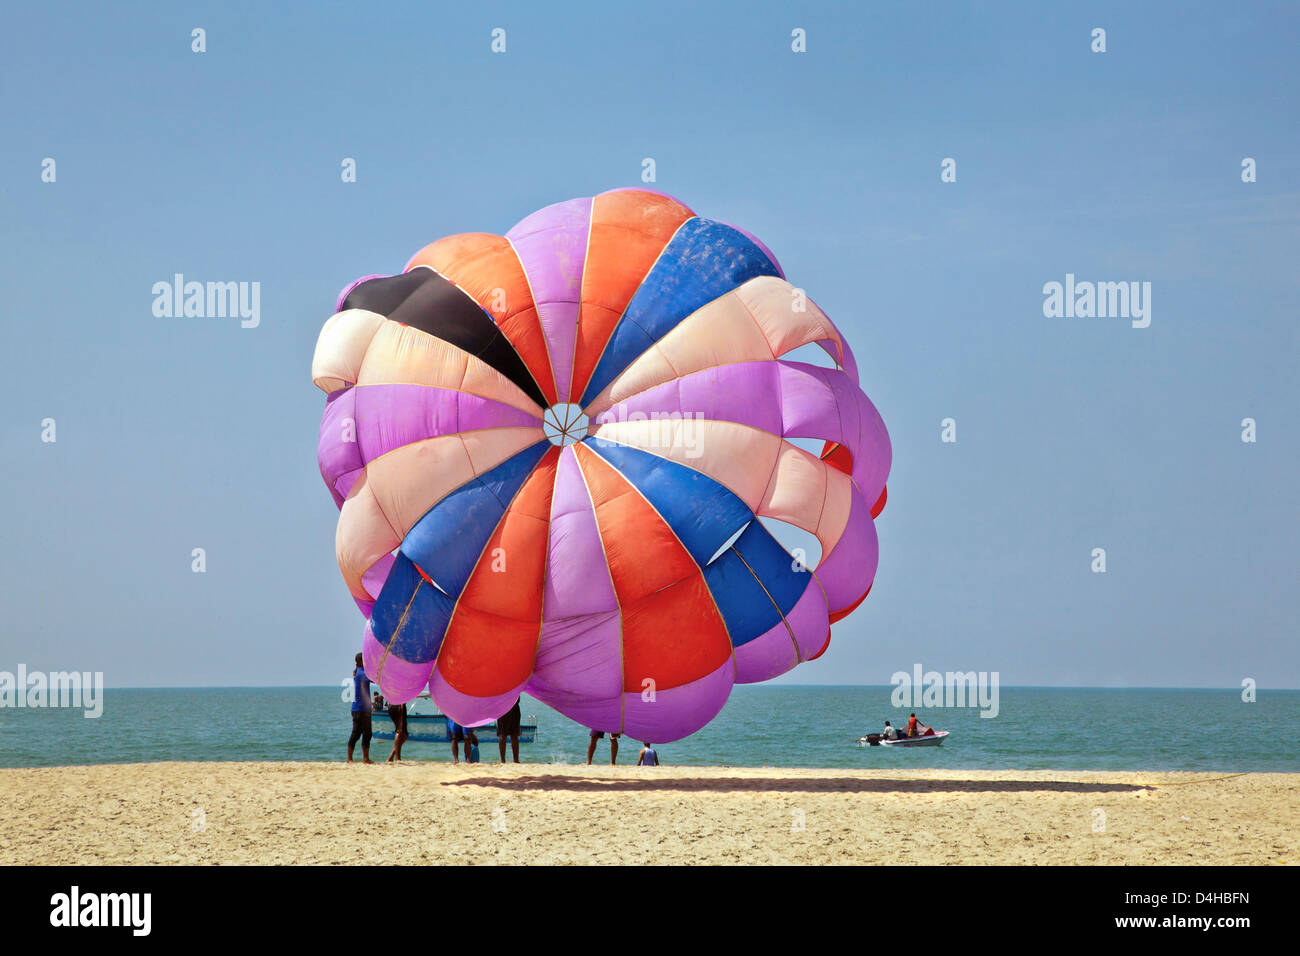 coastal ocean landscape, generic tropical of paragliders about to take flight over the ocean and beach area of Goa Stock Photo